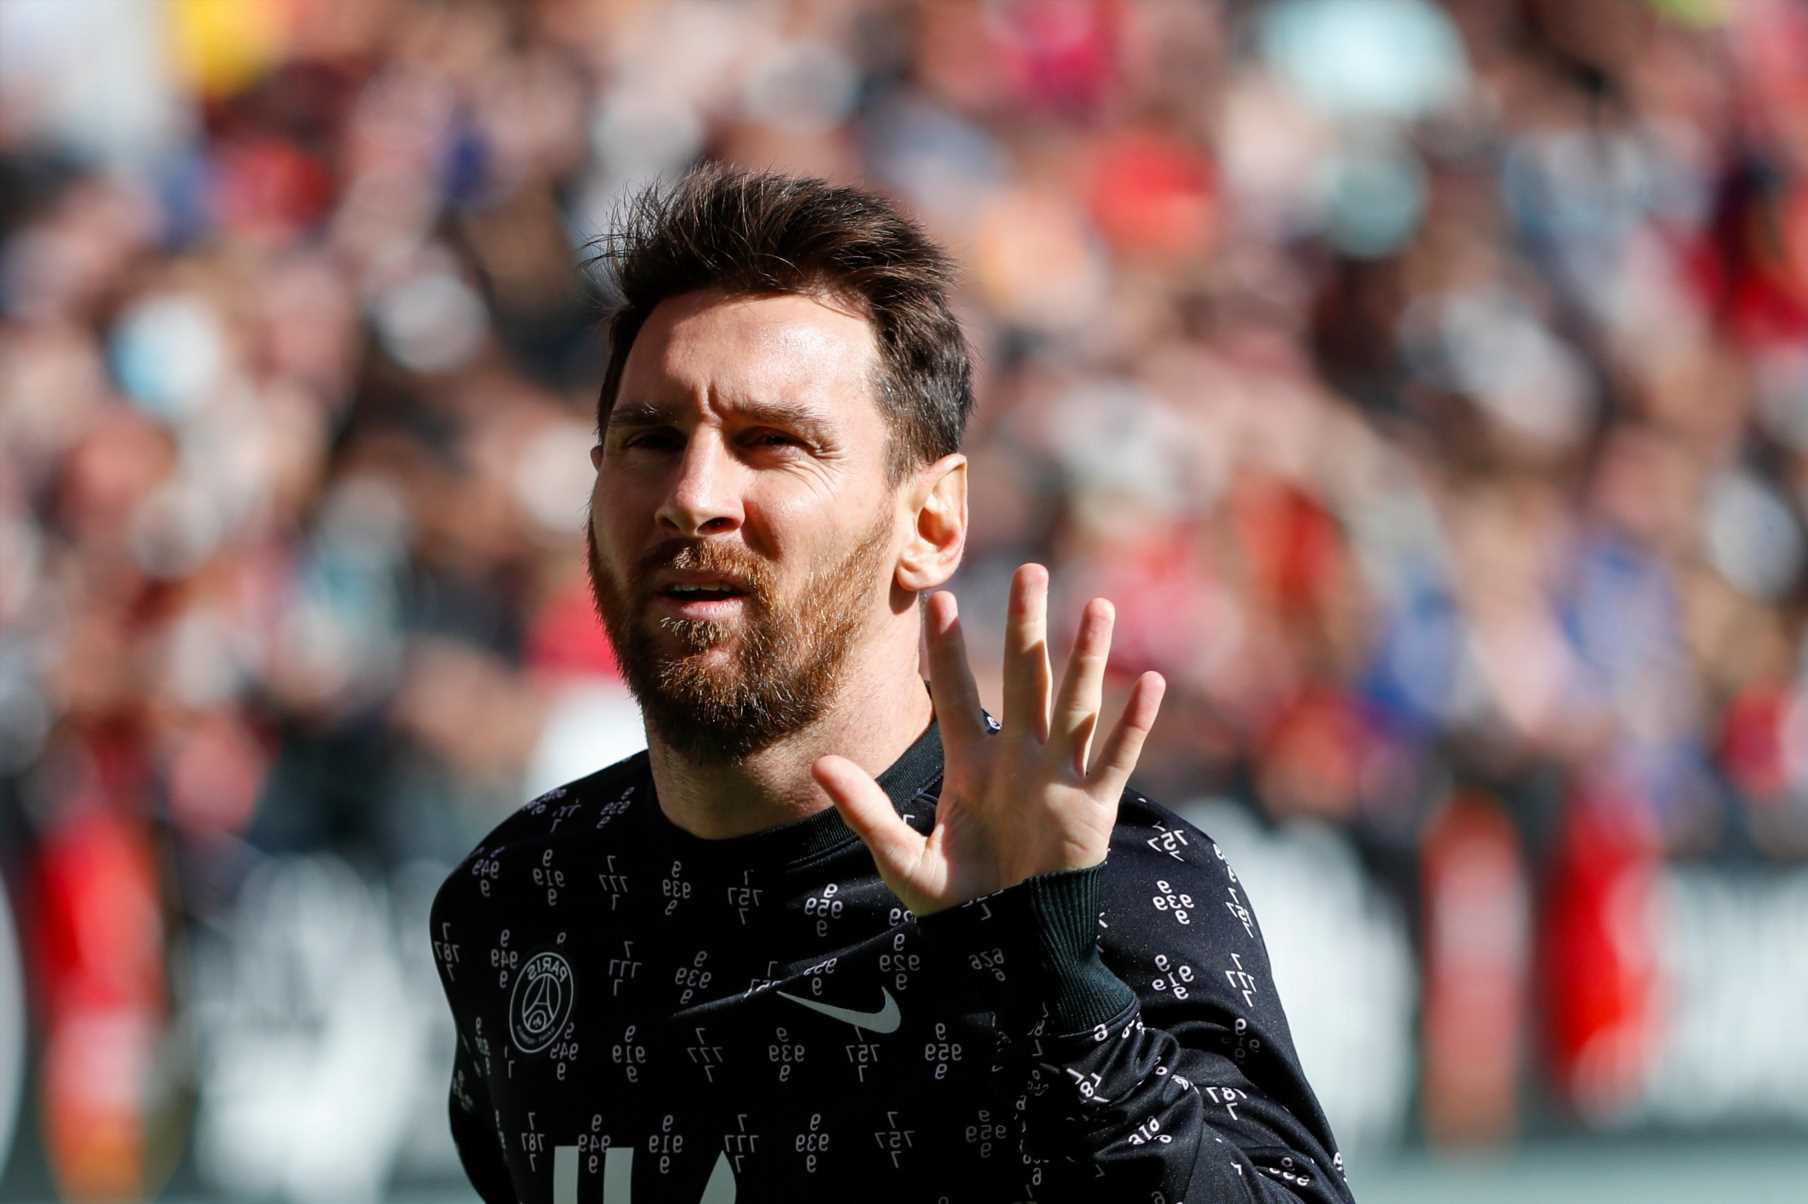 Barcelona hoped Lionel Messi would play for them for FREE and turn down PSG transfer after LaLiga salary cap ban